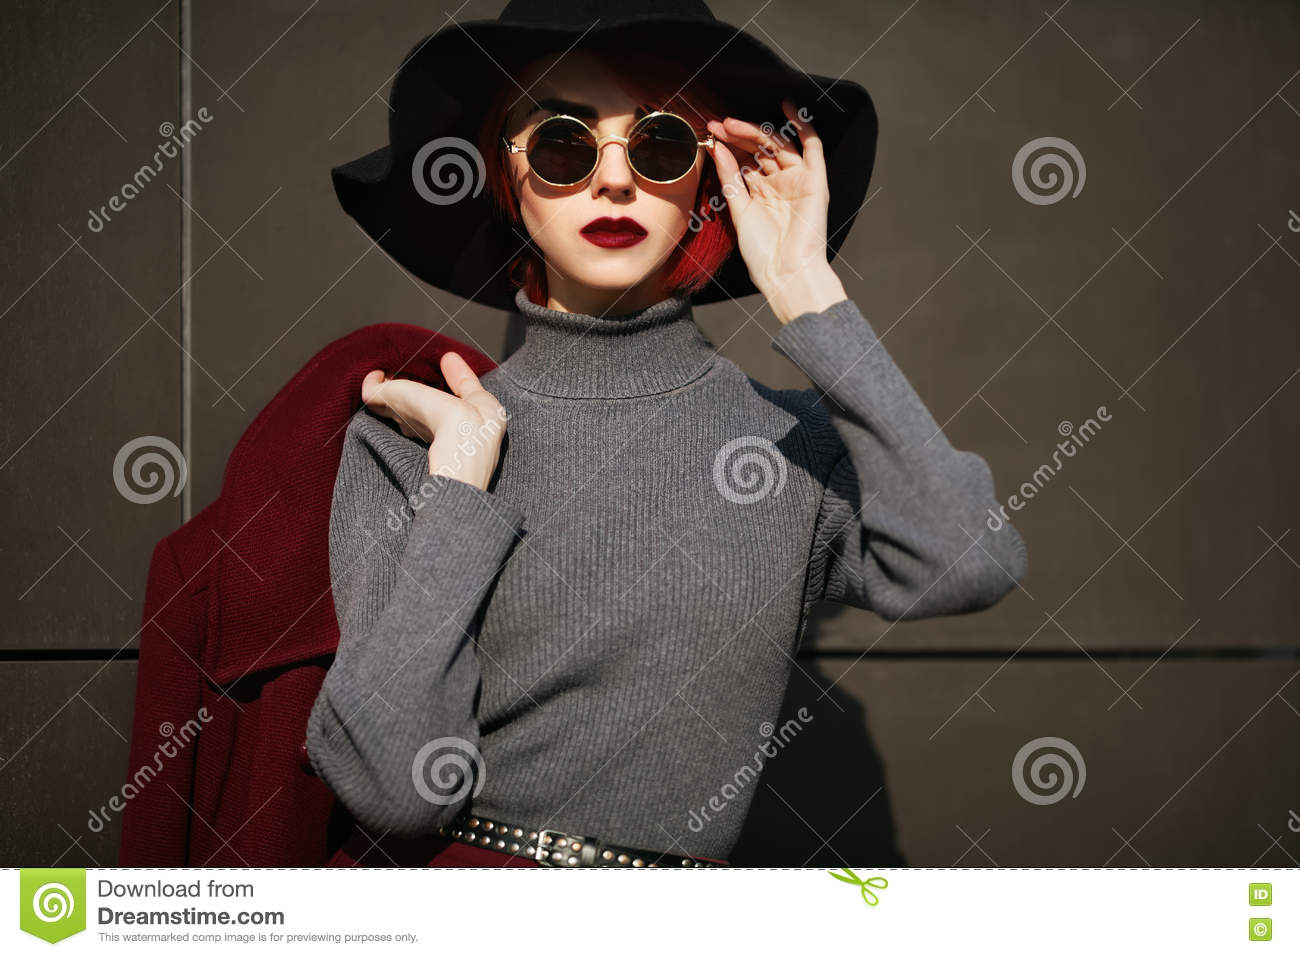 4a2c34758b5 Closeup portrait of young beautiful fashionable woman with sunglasses. Lady  posing on dark grey background. Model wearing stylish wide-brimmed hat. Girl  ...